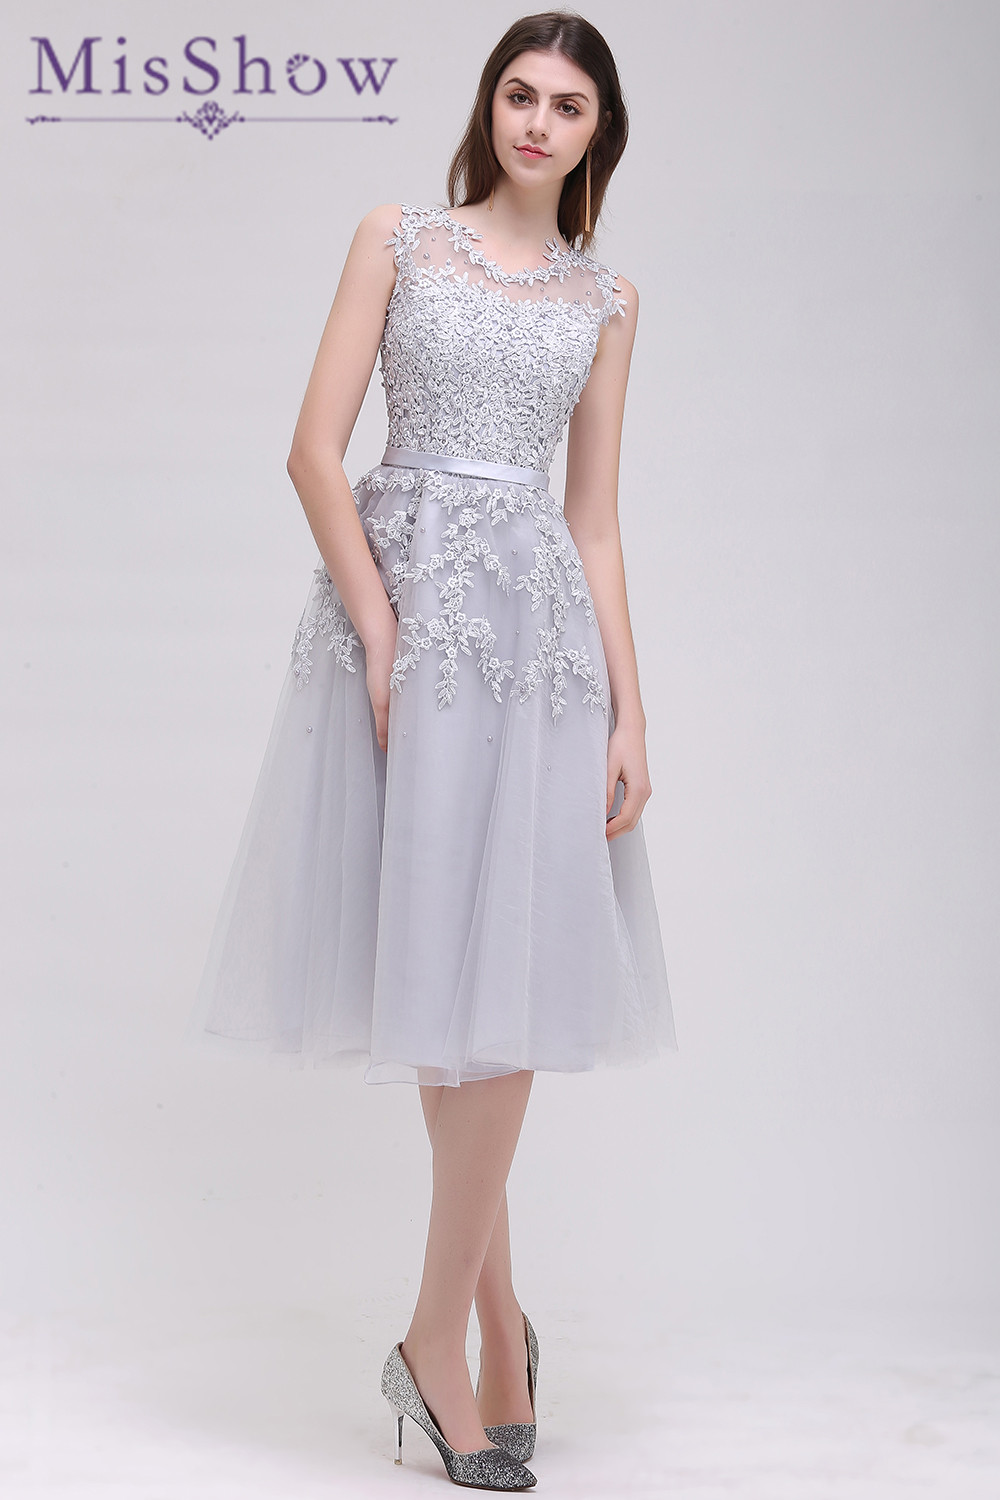 New Gray Short   Bridesmaids     Dresses   2019 Sky Blue Applique Beads Sheer Back Party Gown   Dress   For Wedding Guests